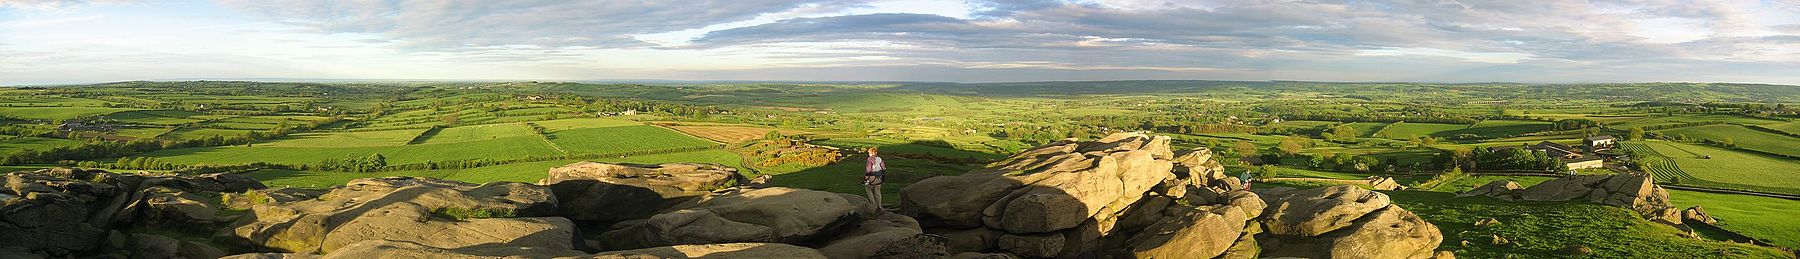 Panorama from the top of Almscliffe Crag